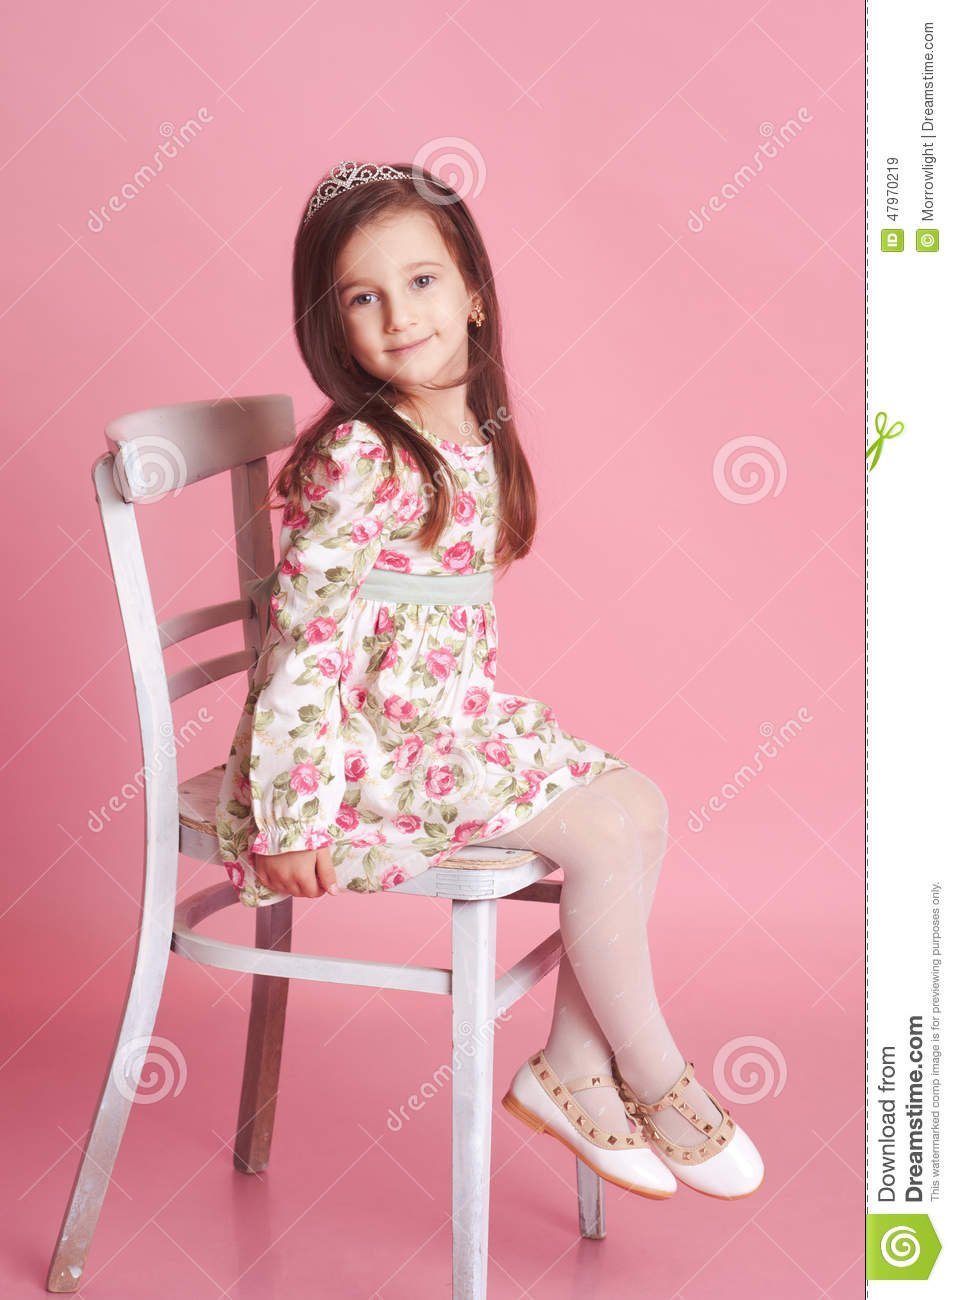 smiling girl sitting on chair in room stock image image. Black Bedroom Furniture Sets. Home Design Ideas